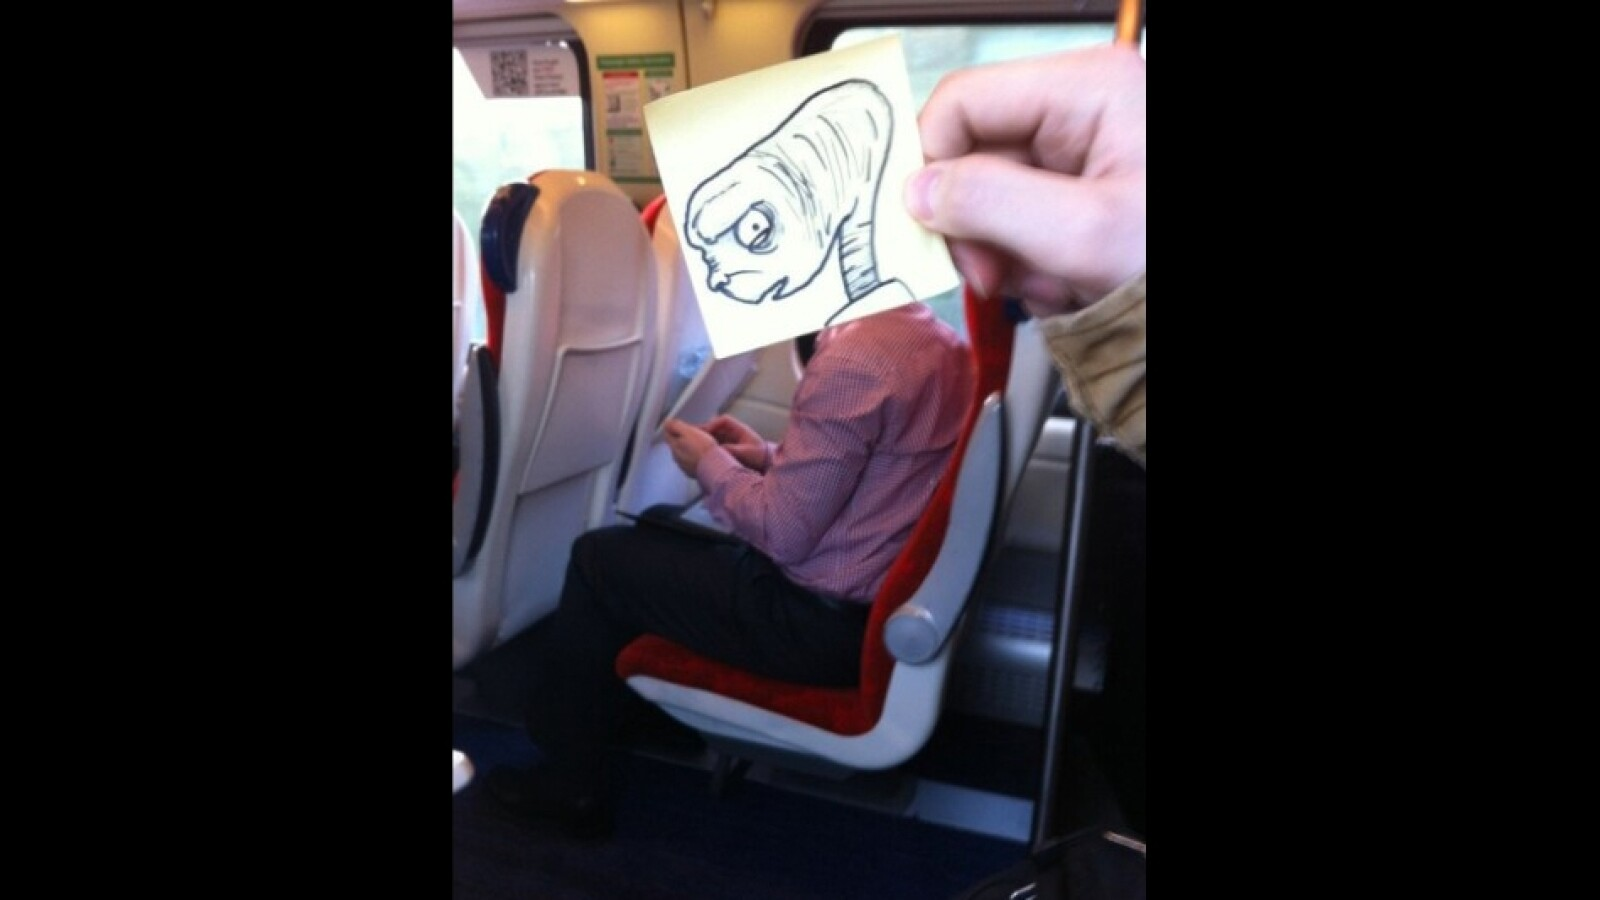 commuters cartoons 8